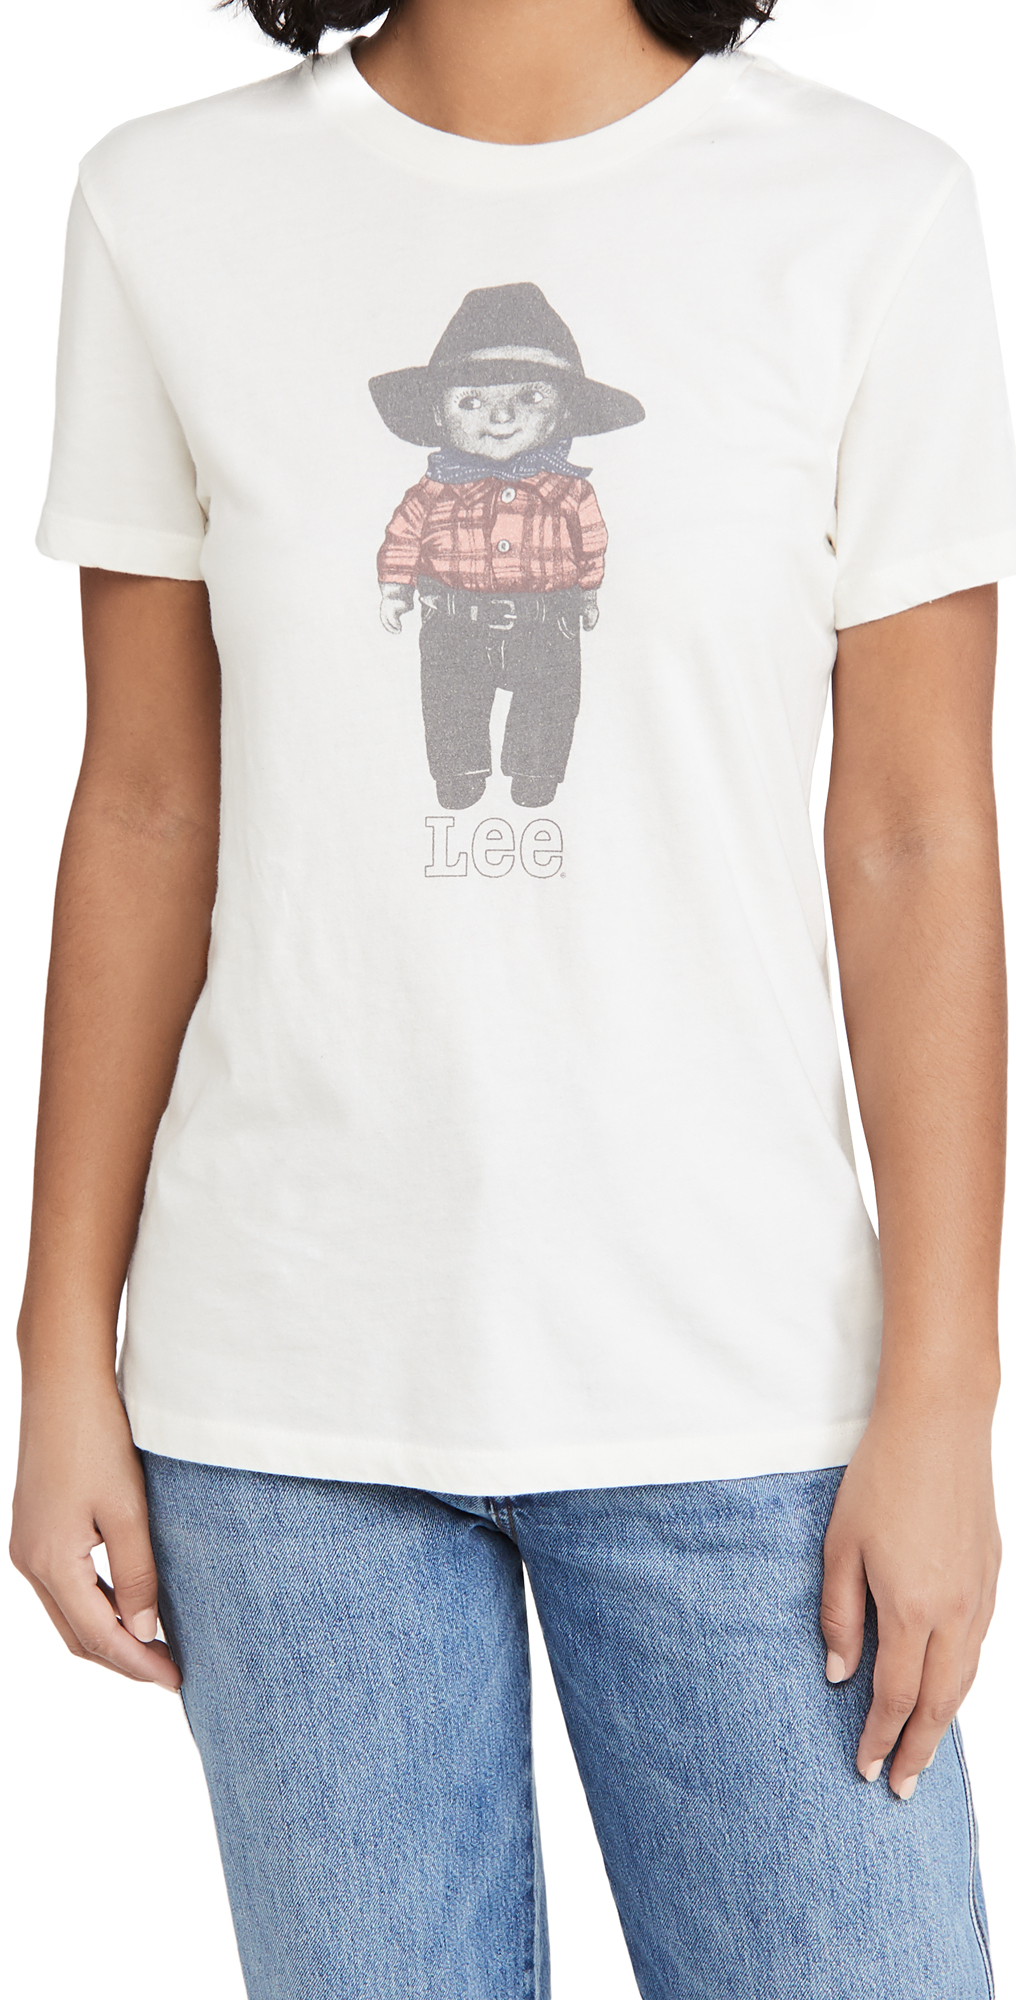 Lee Vintage Modern Buddy Lee Tee